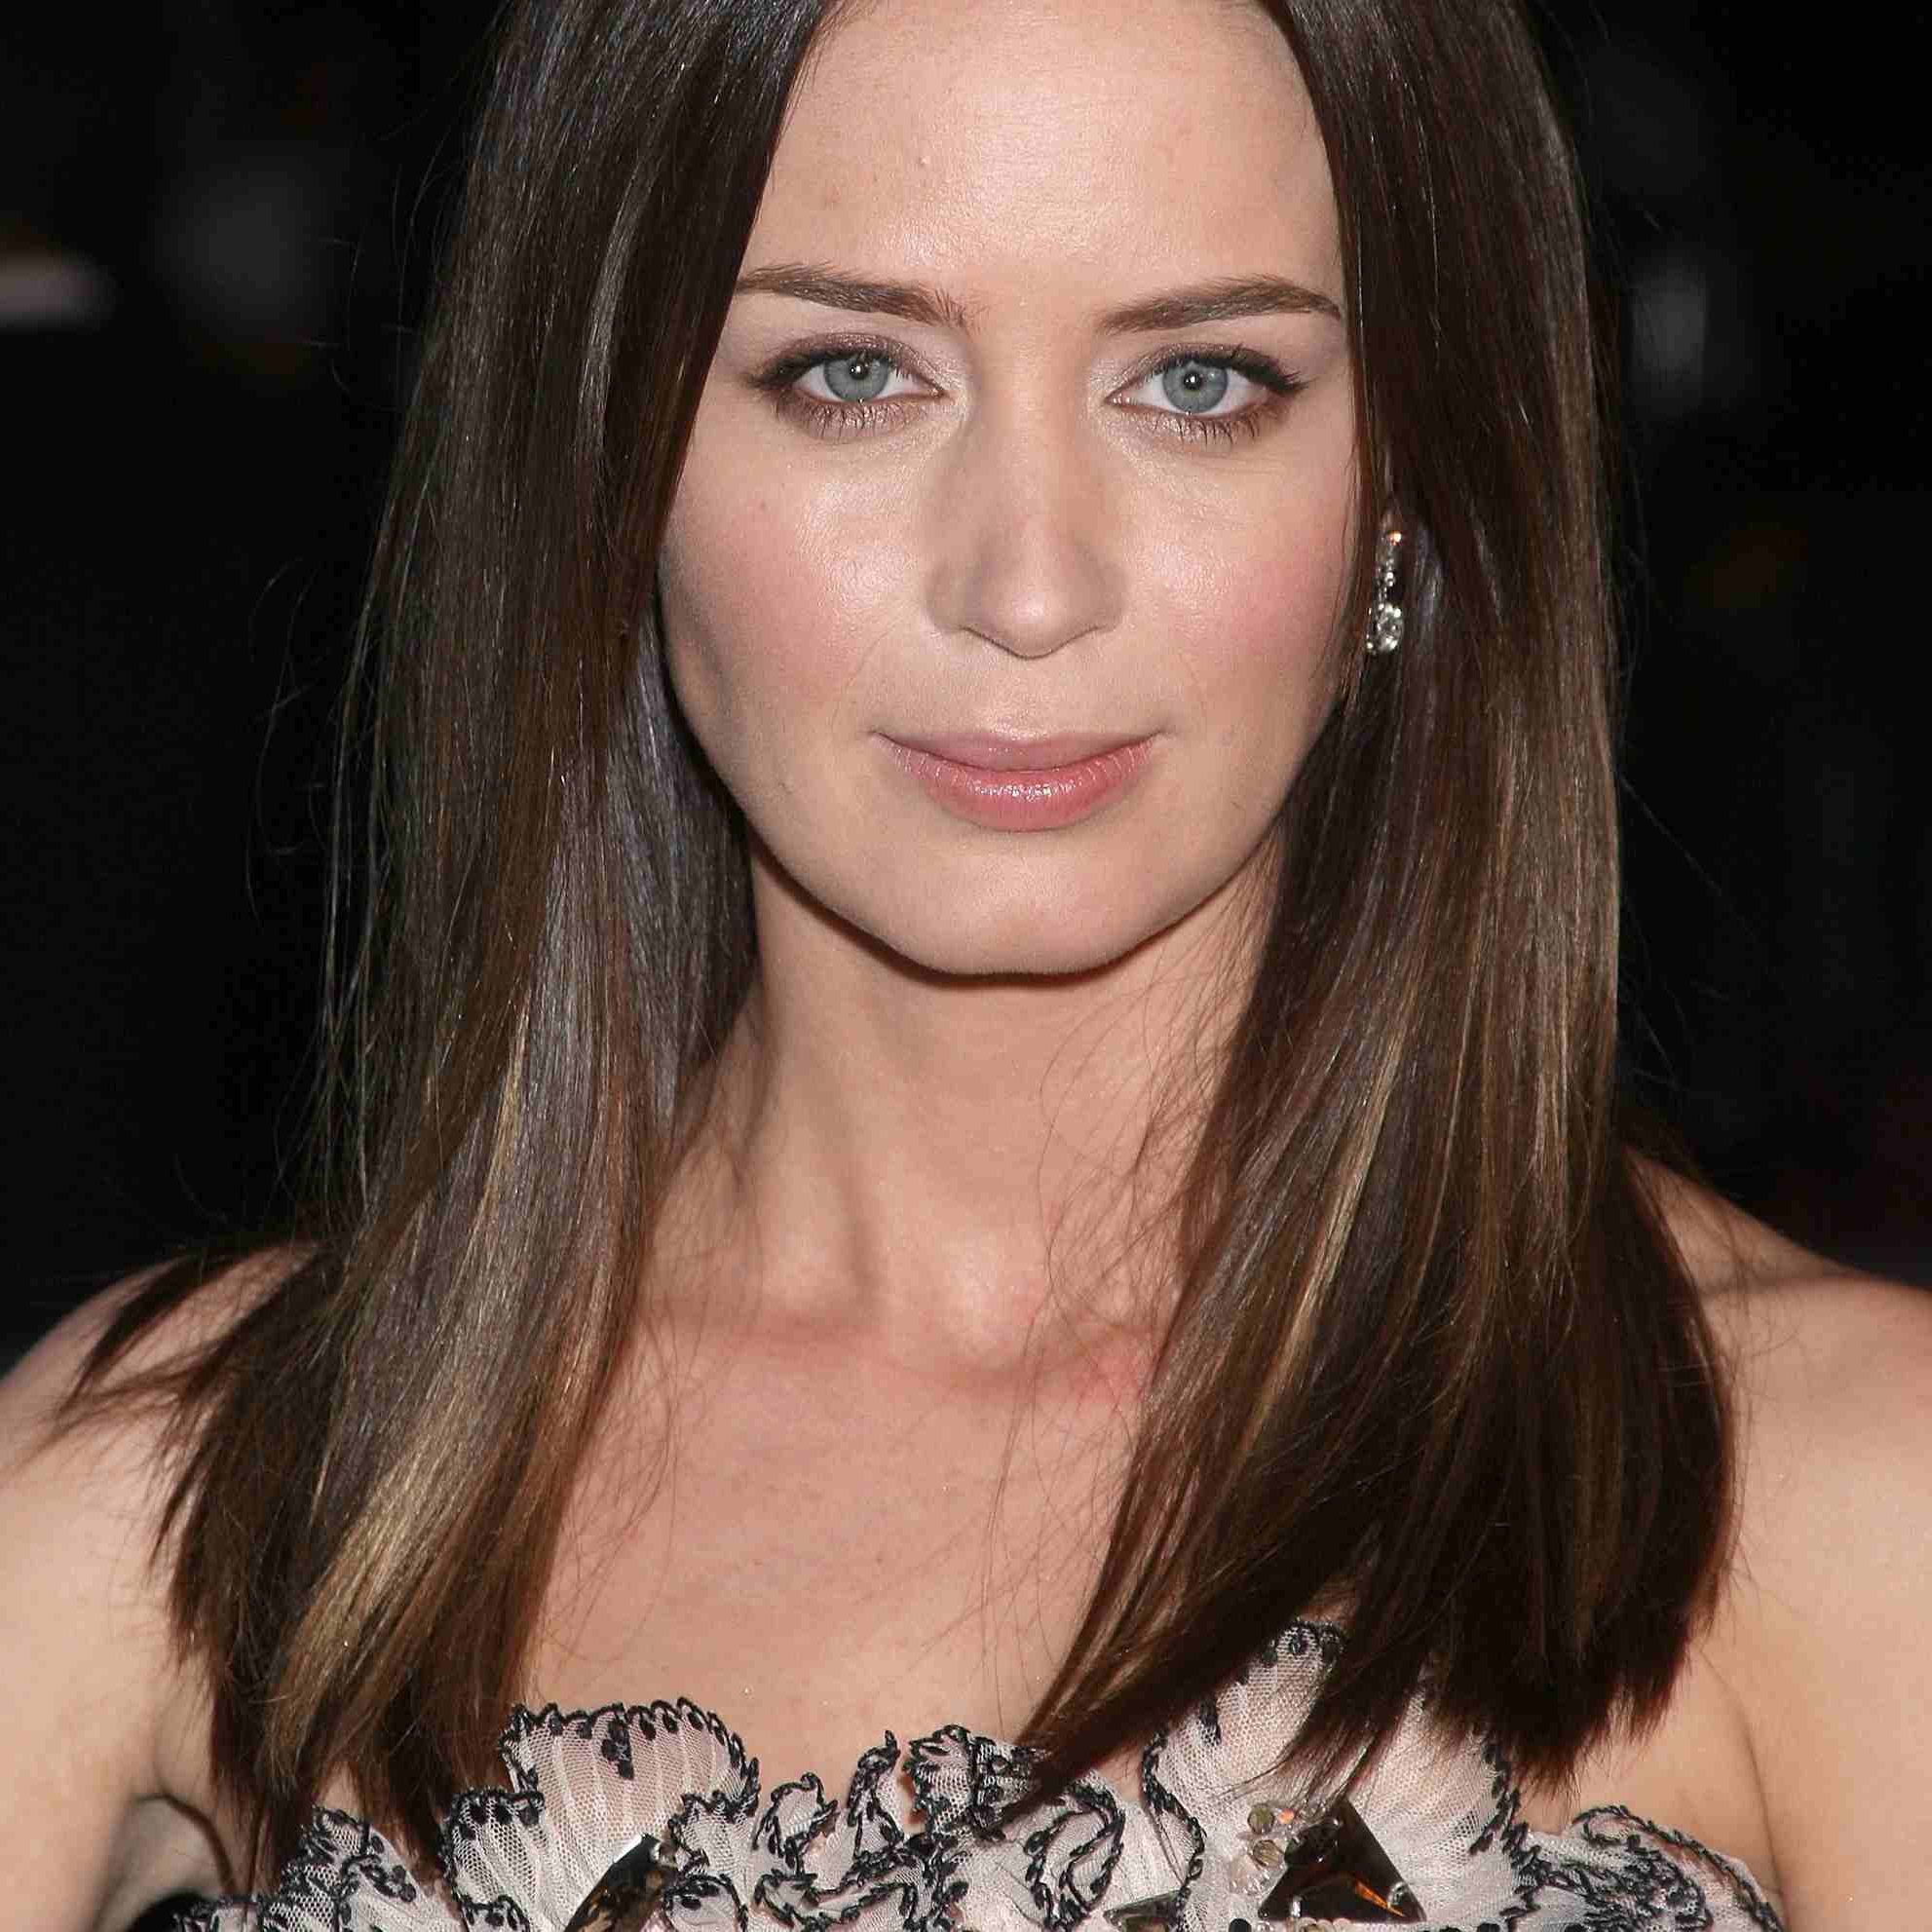 Most Current Sleek Straight And Long Layers Hairstyles With Hairstyles For Women With Long, Naturally Straight Hair (View 14 of 20)